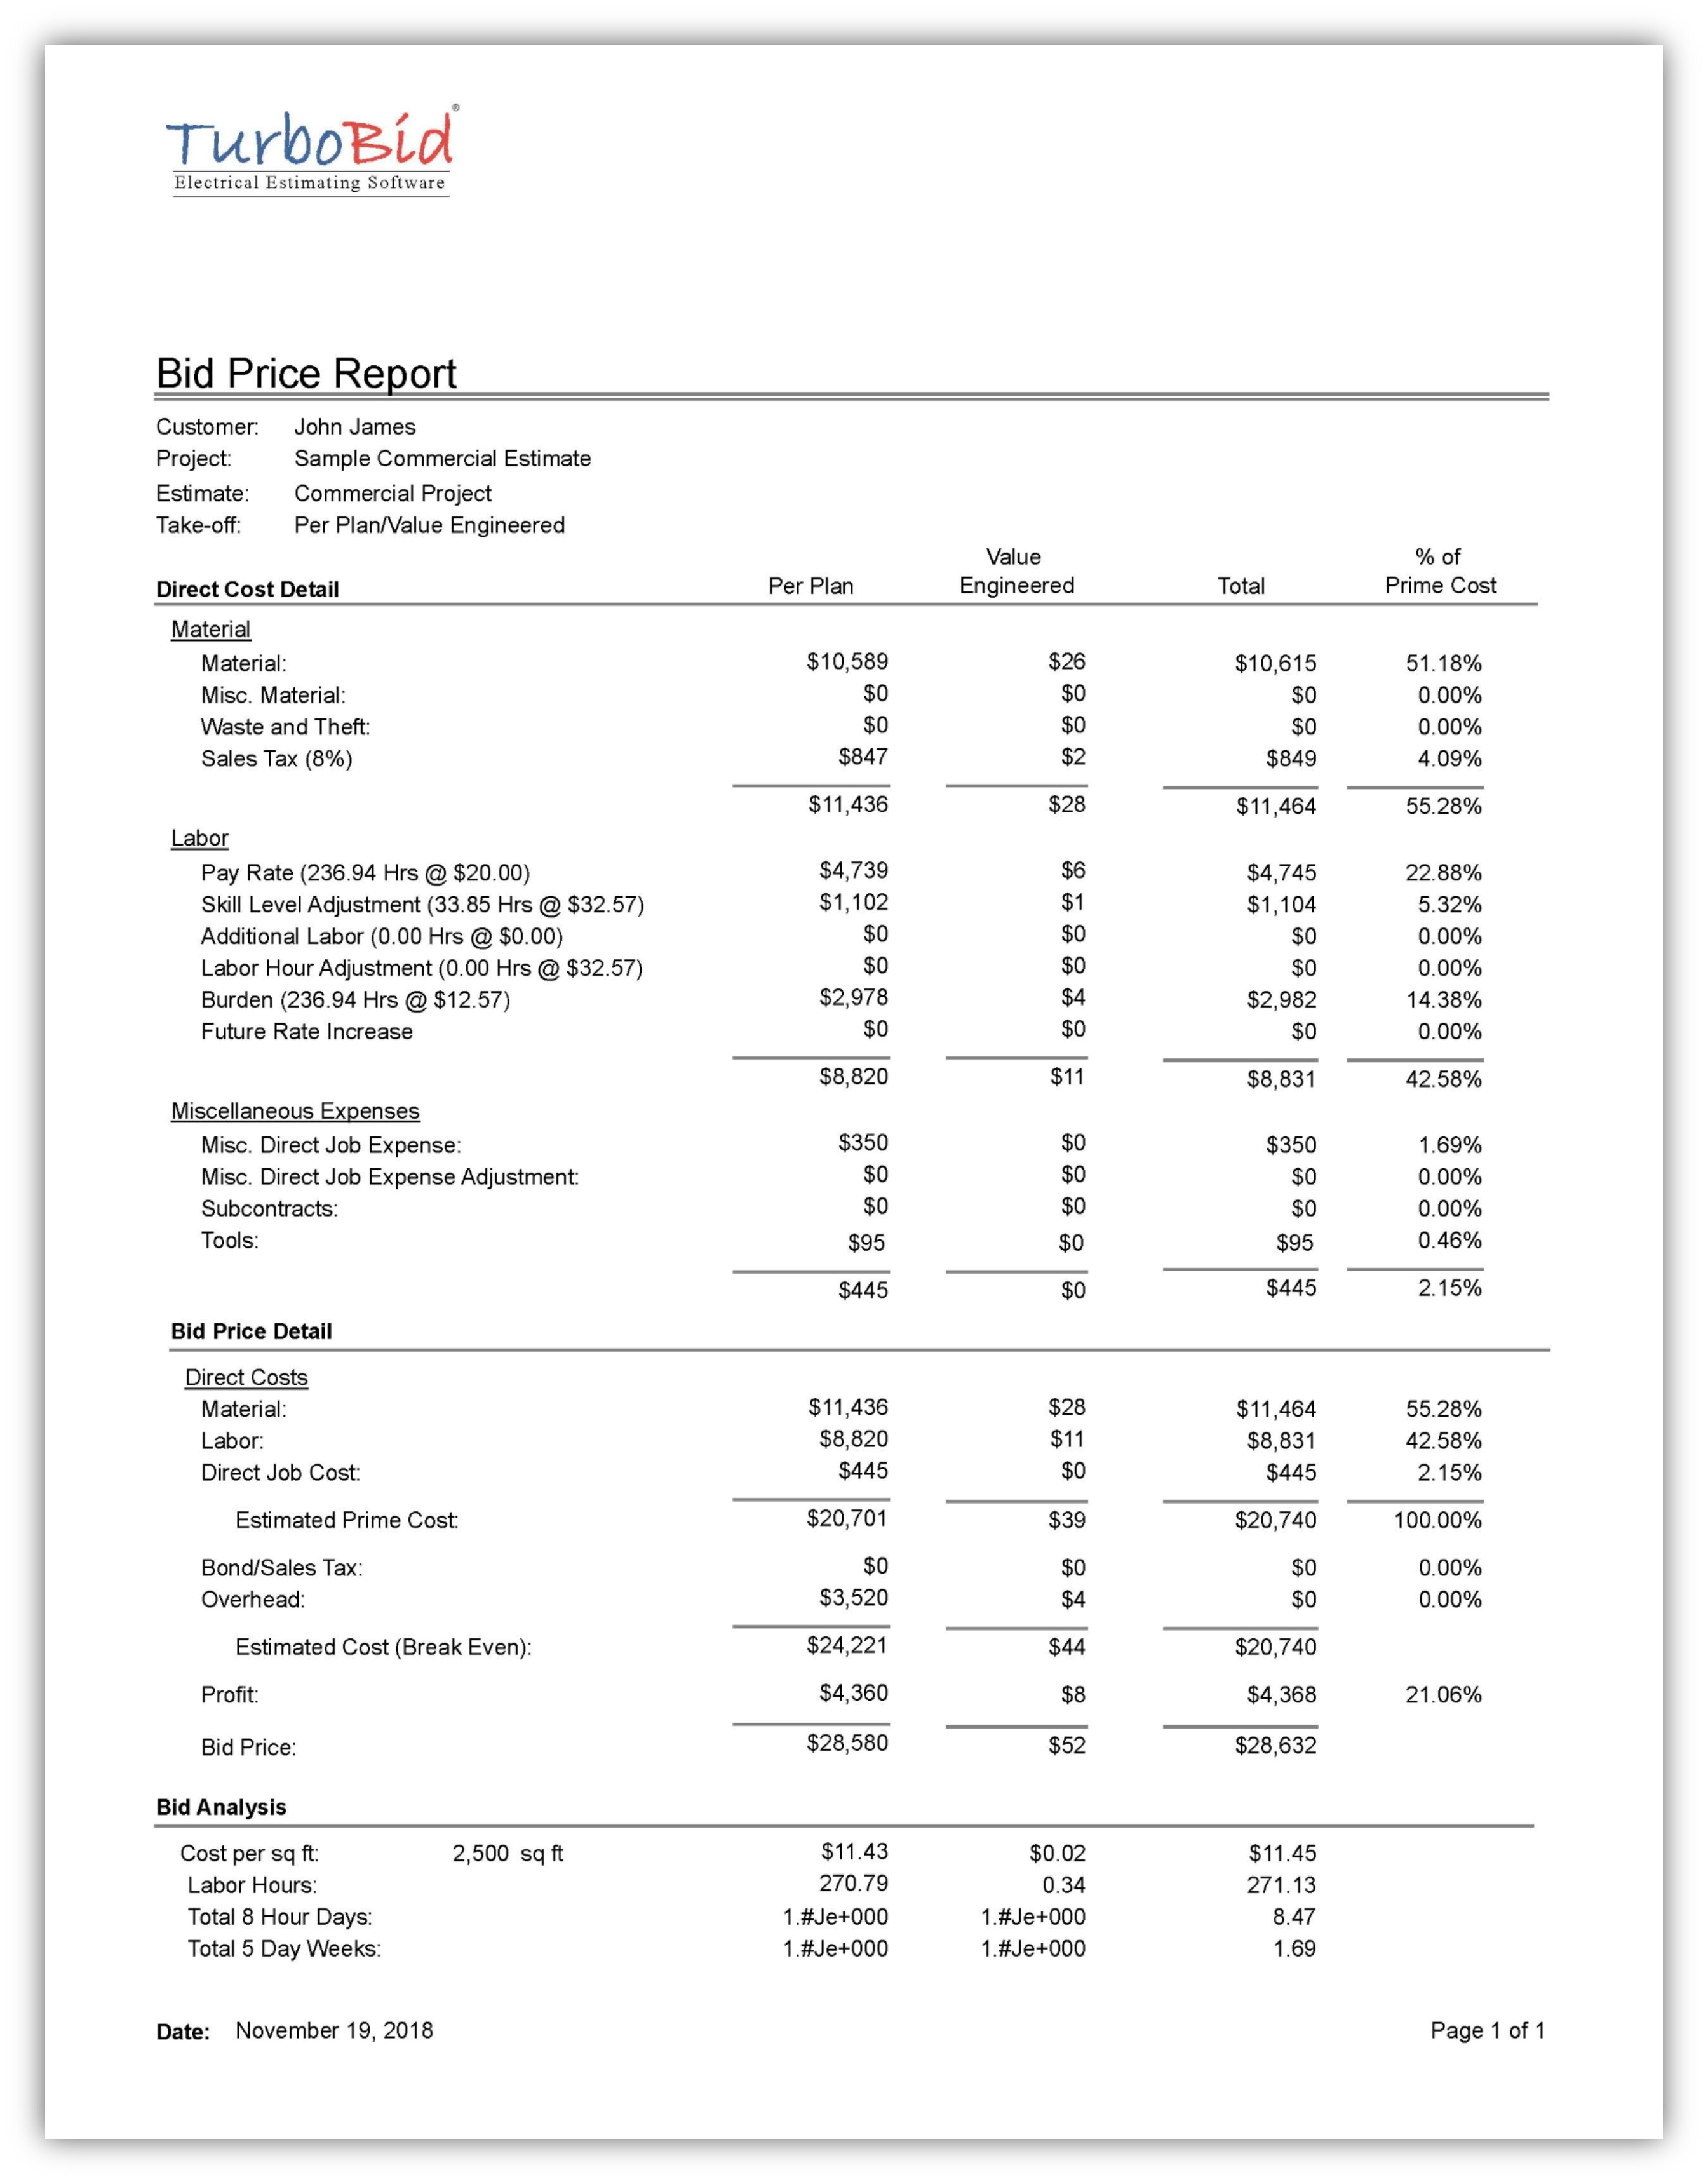 Bid Price Report